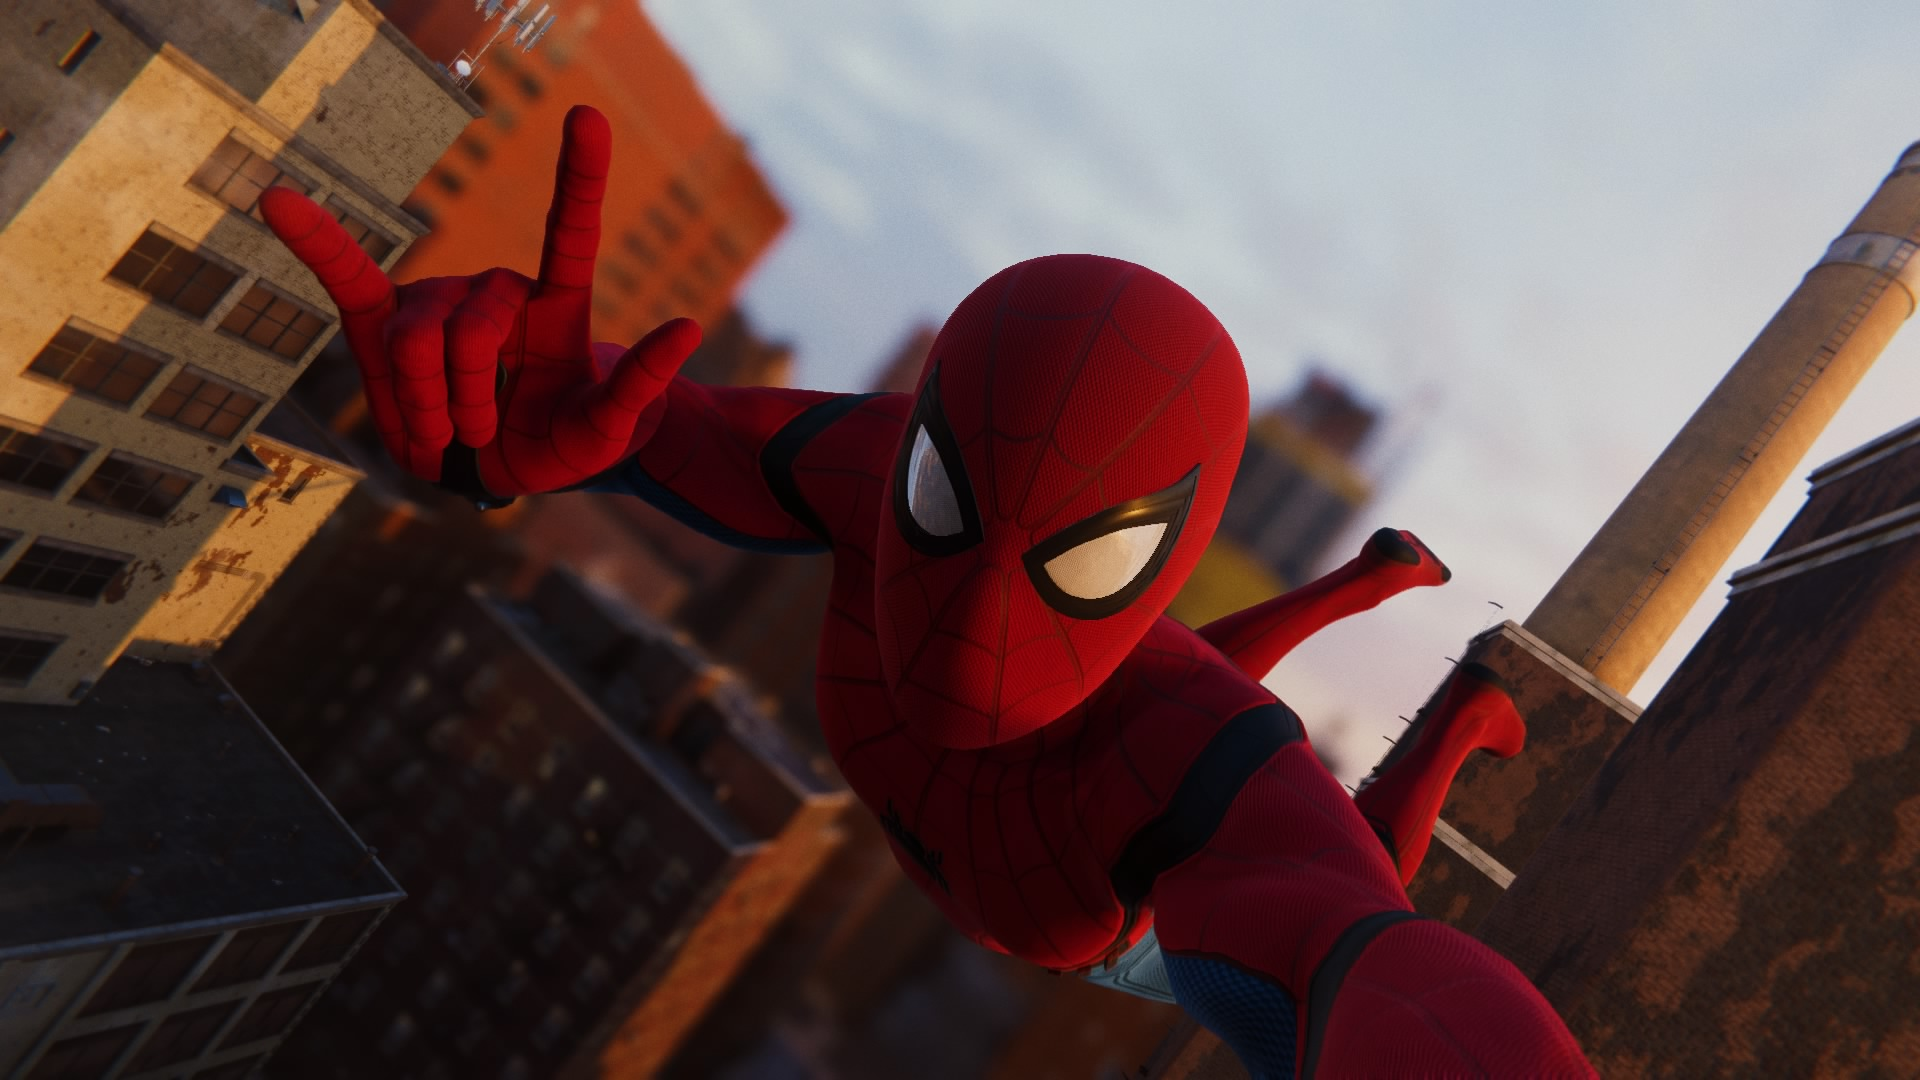 30+ Spiderman Ps4 Selfie Wallpaper Background